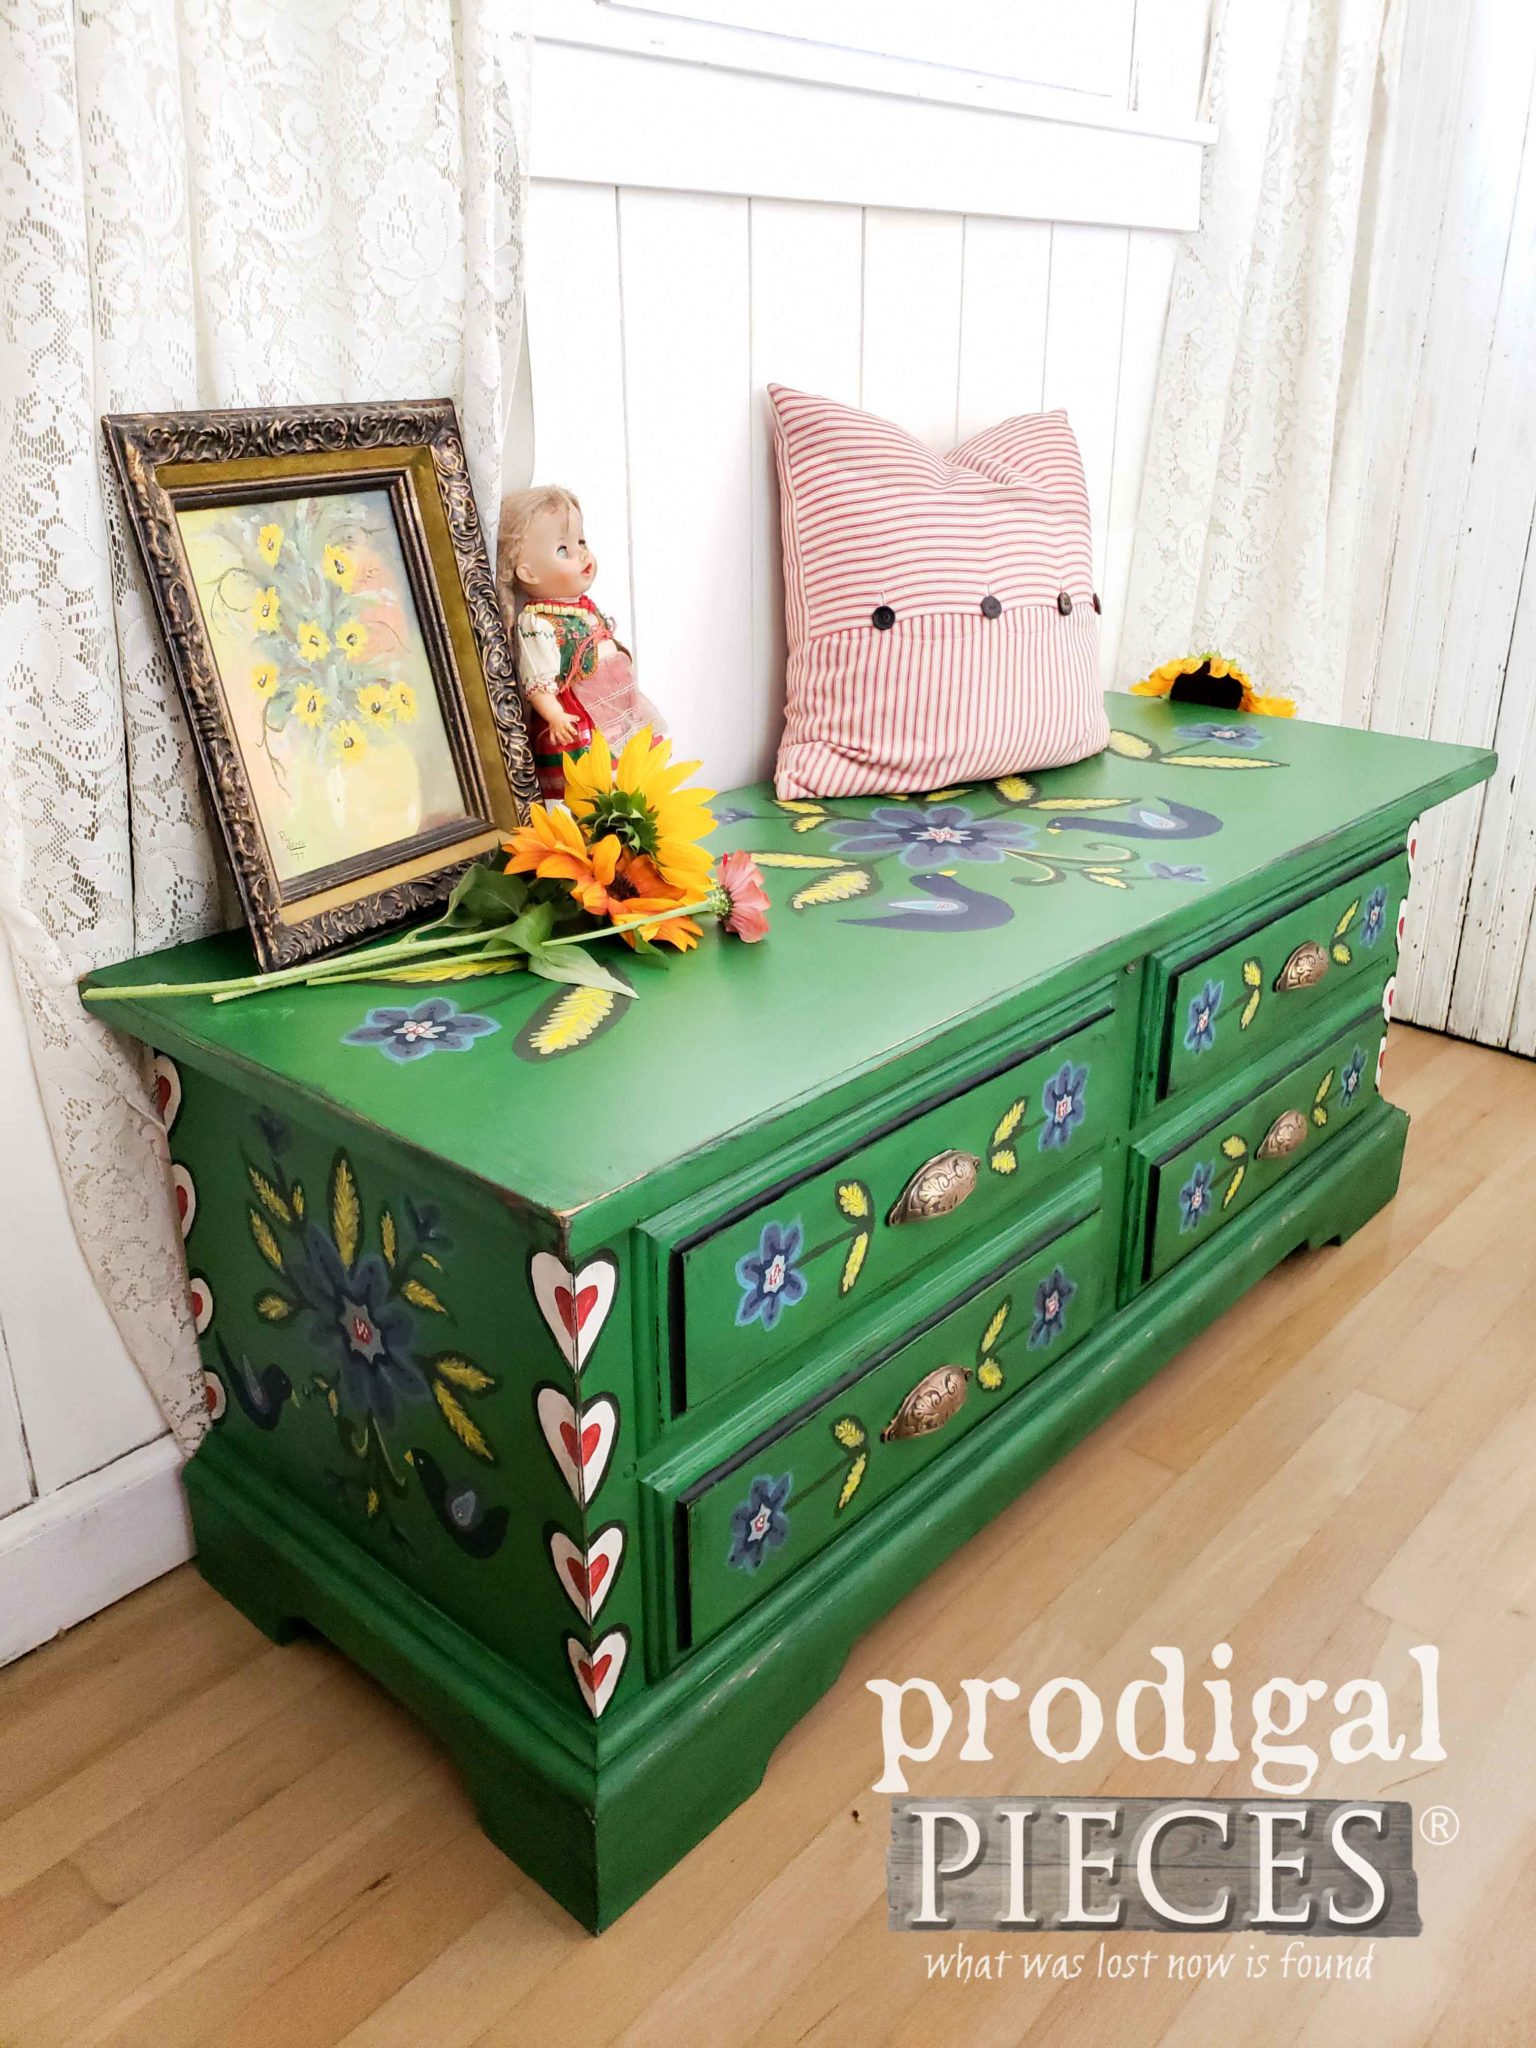 Primitive Polish Folk Art Blanket Chest by Larissa of Prodigal Pieces | prodigalpieces.com